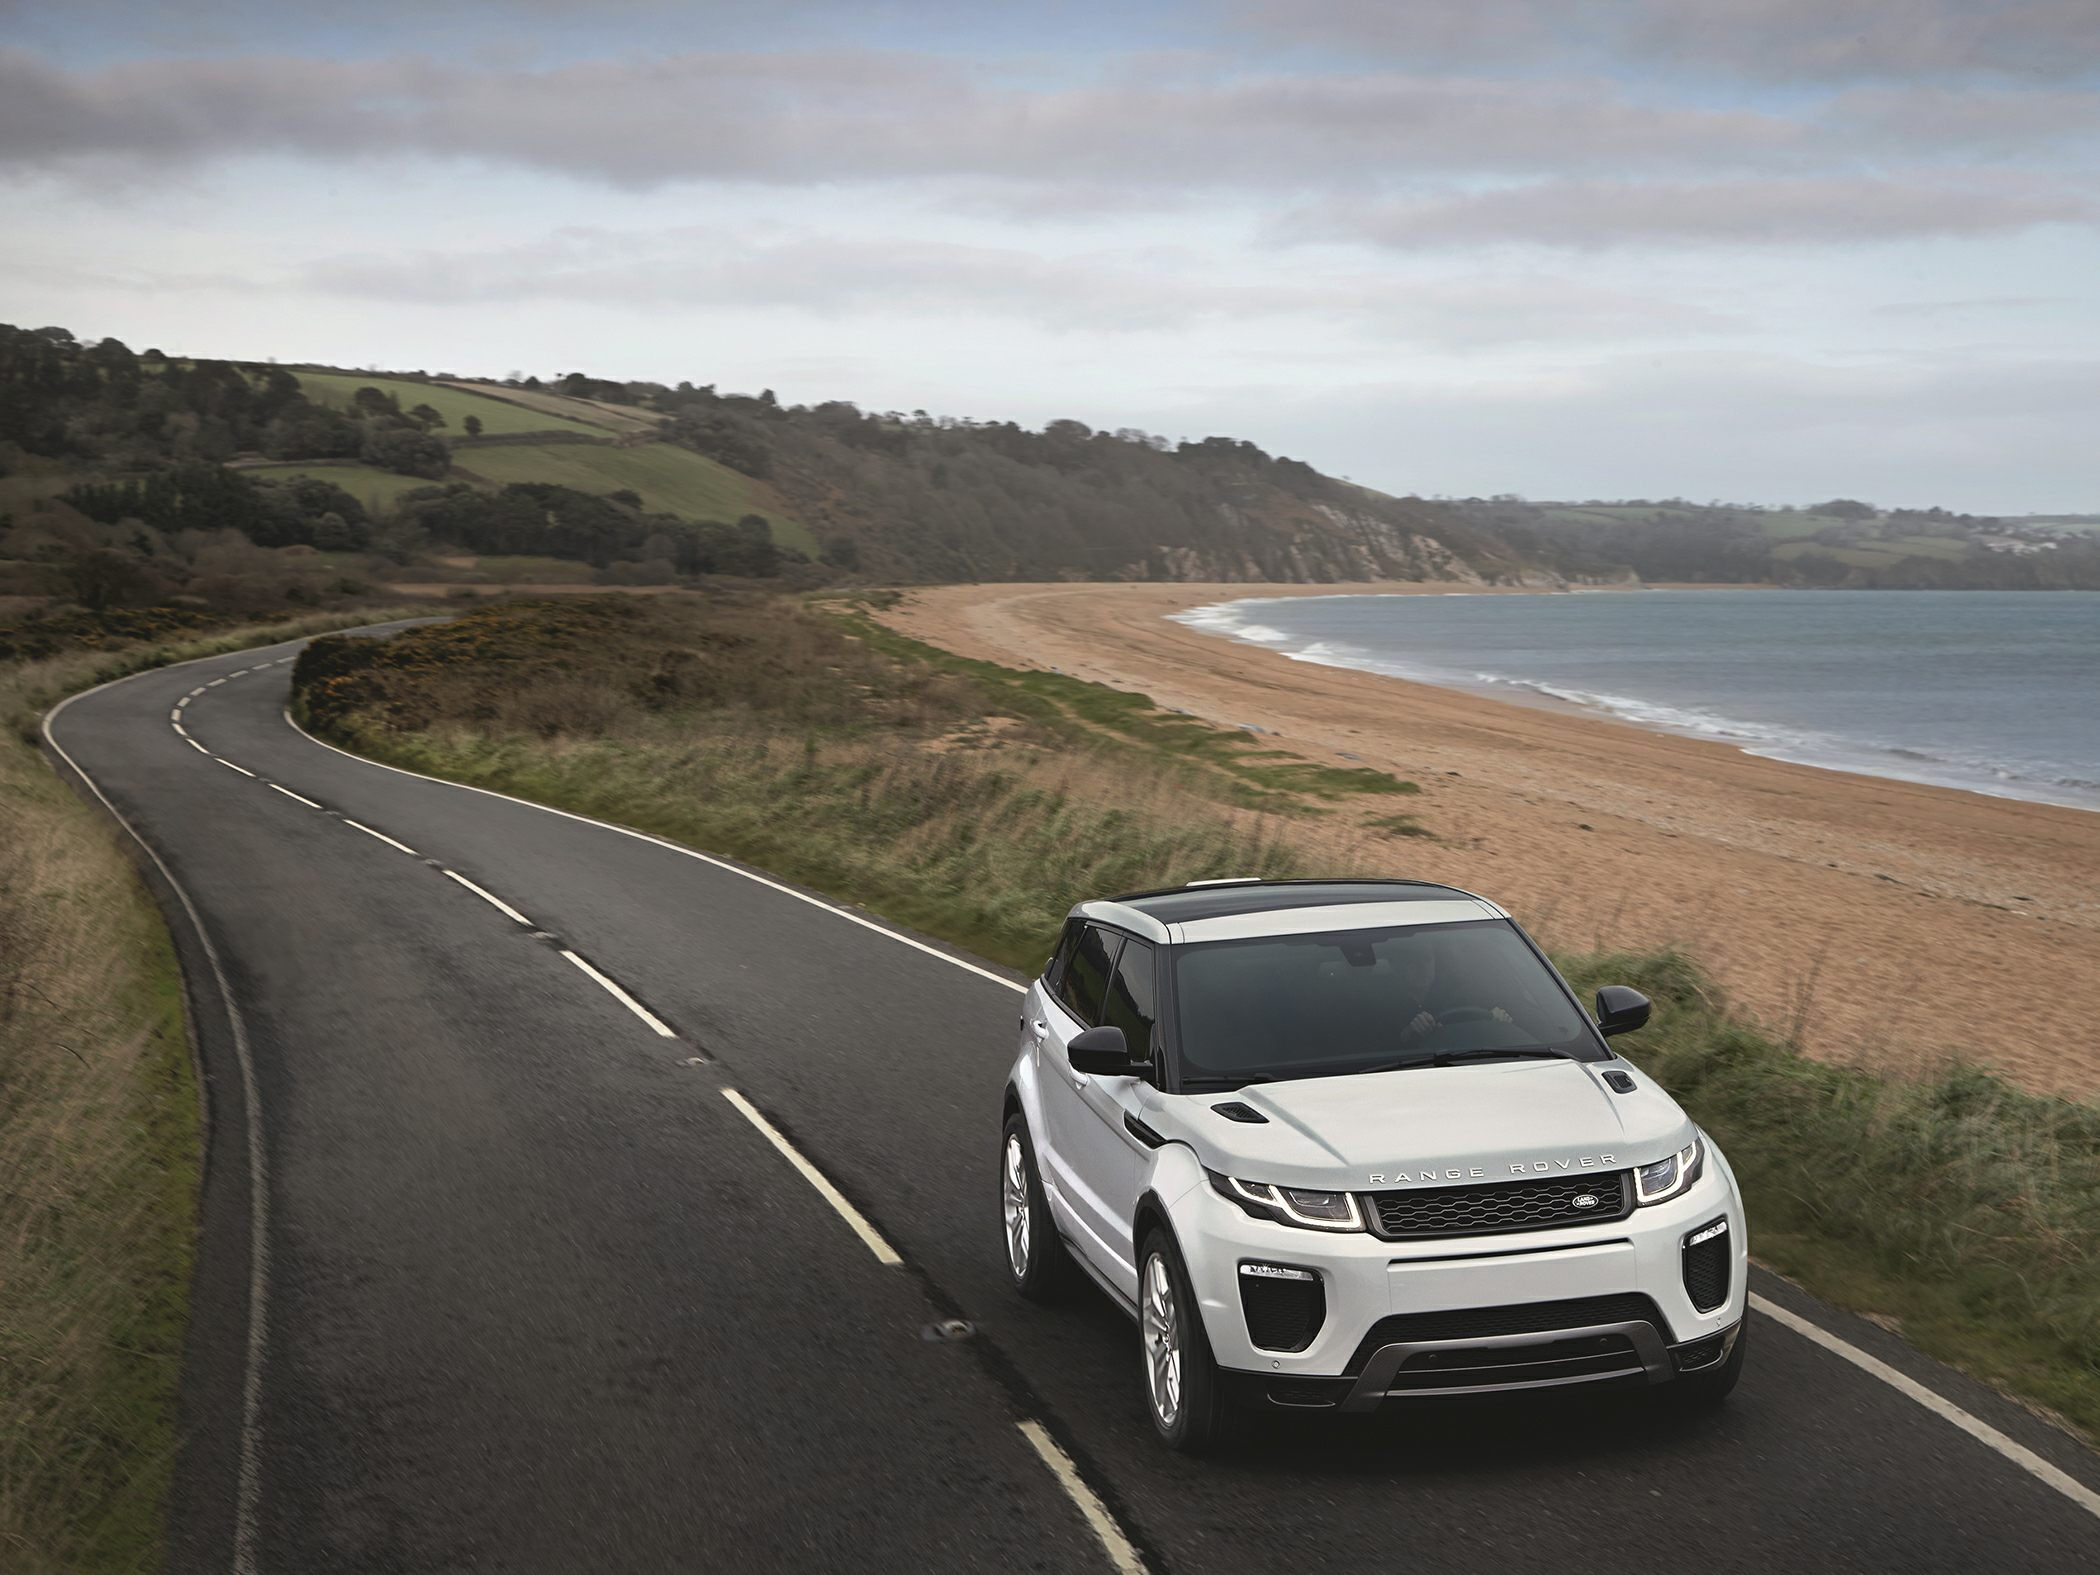 2018 Land Rover Range Rover Evoque New Car Test Drive